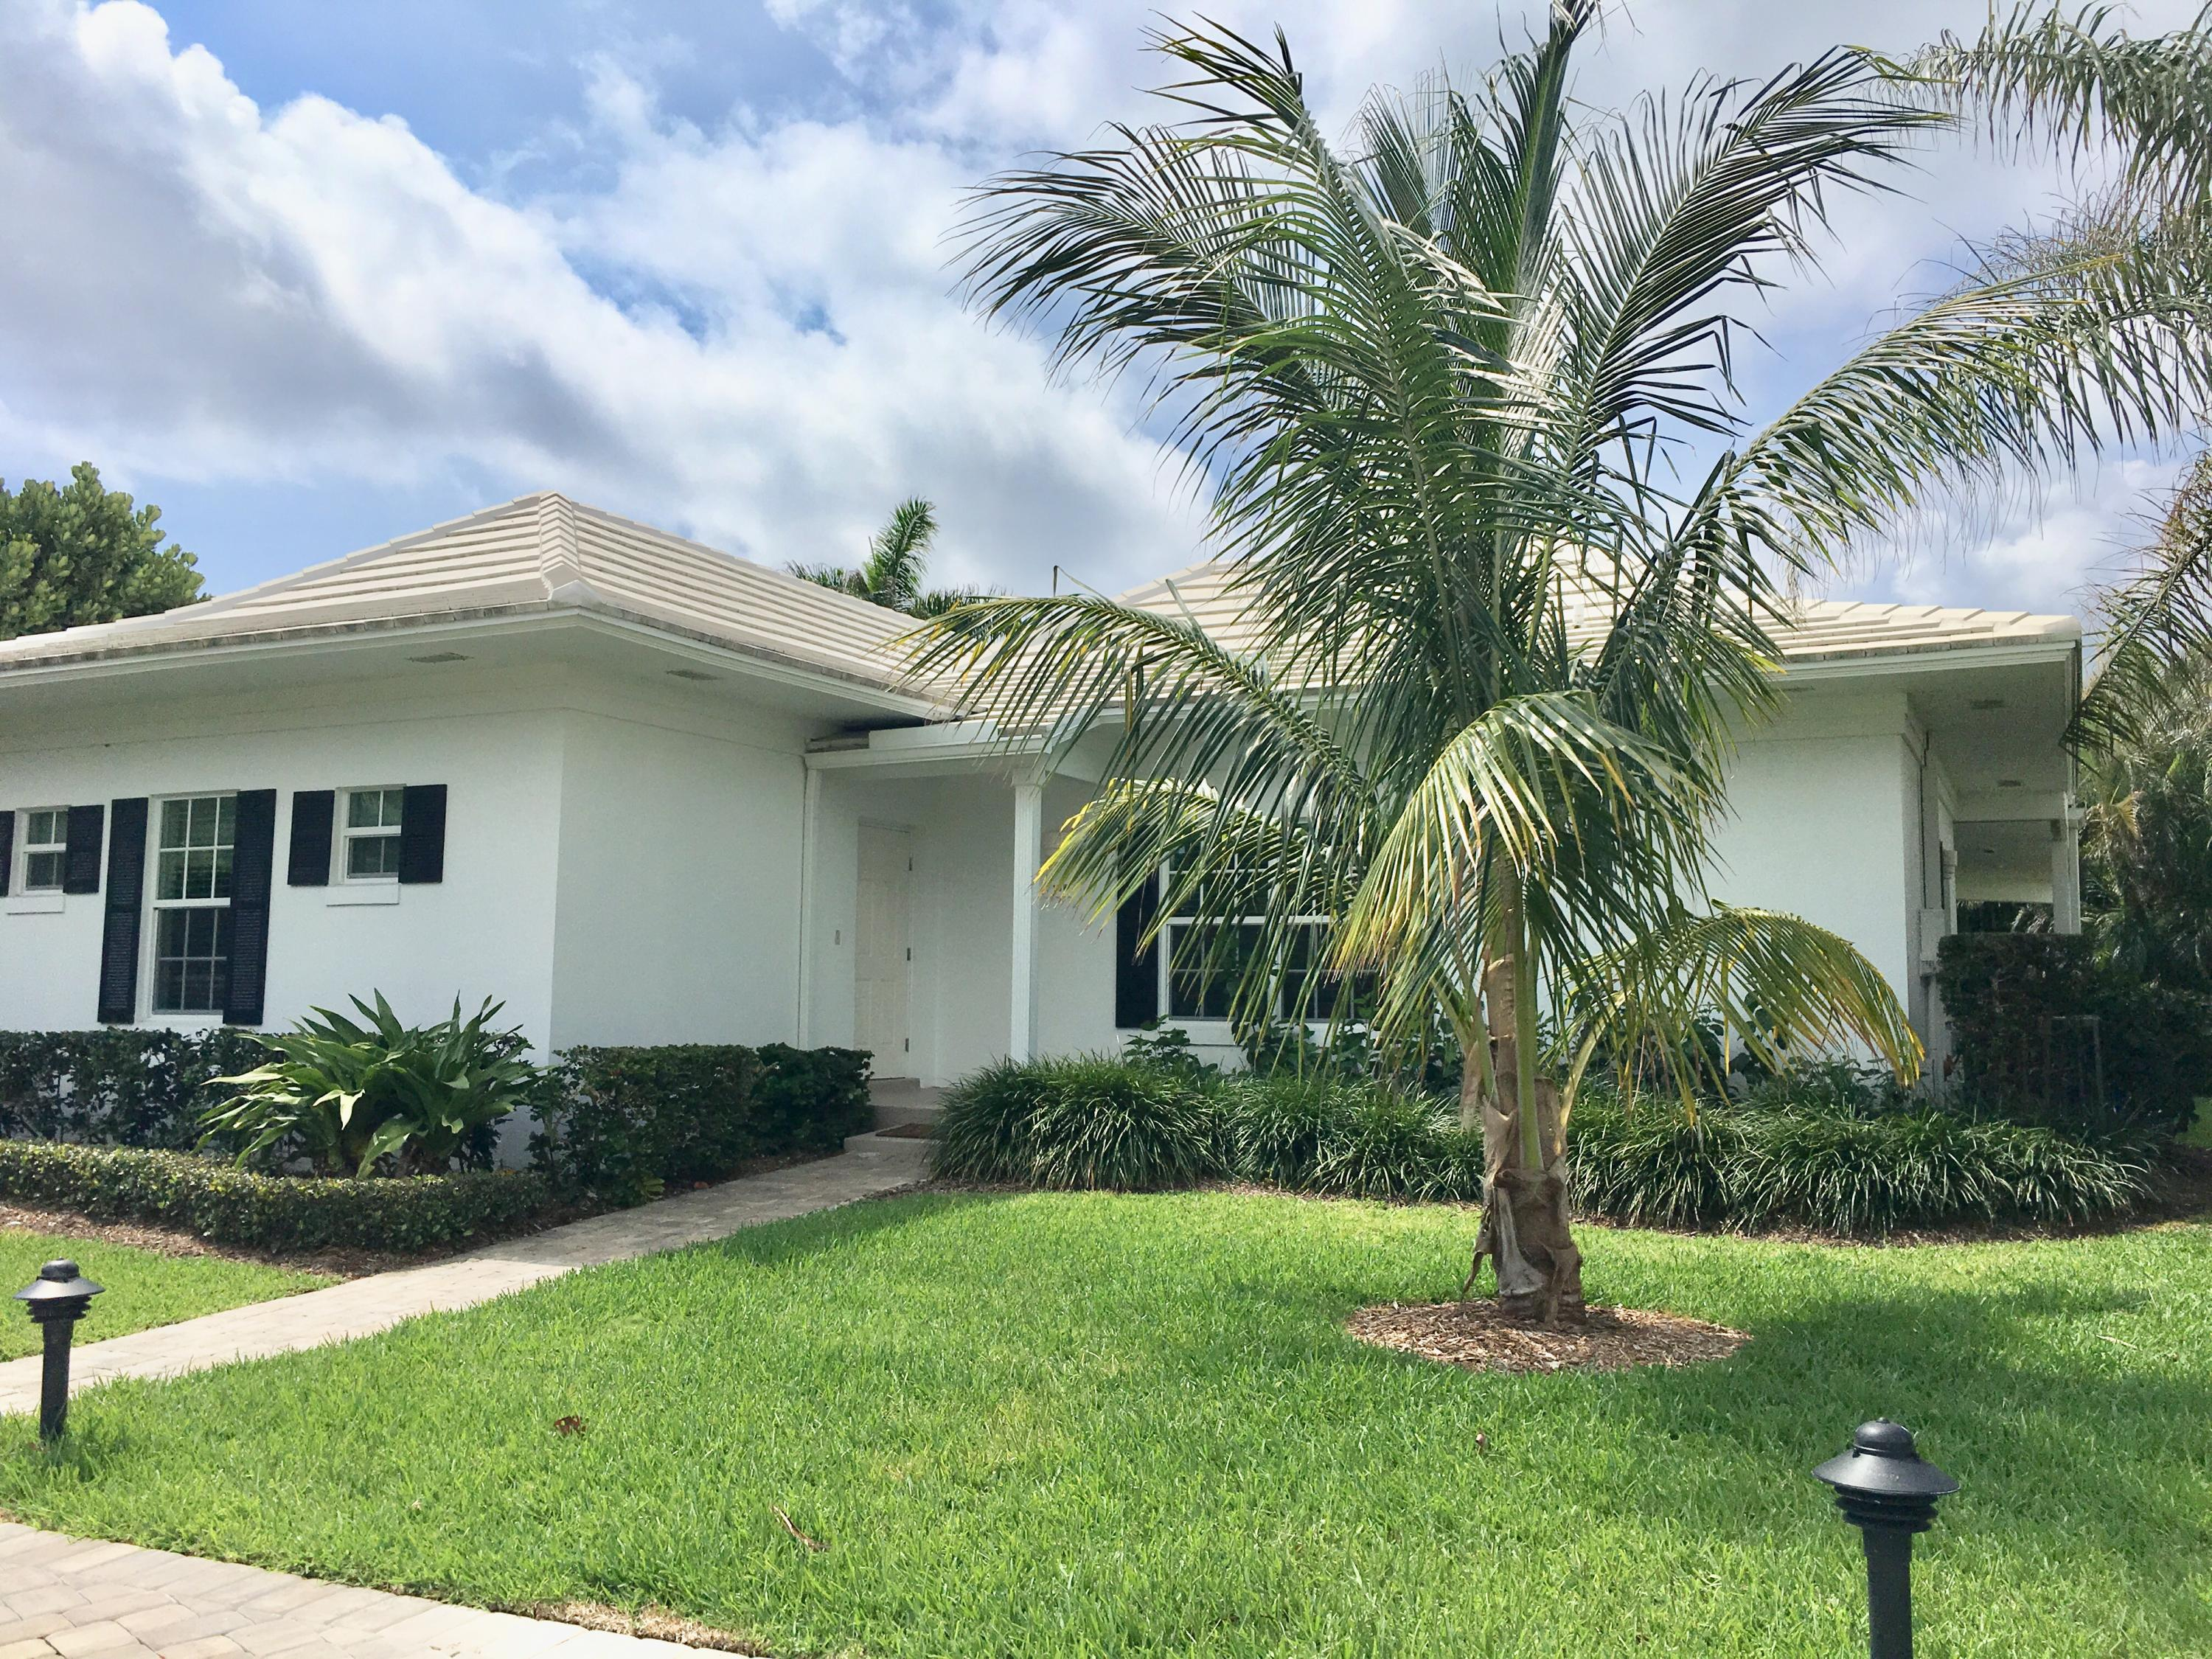 Home for sale in La Coquille Villas, Inc. Manalapan Florida